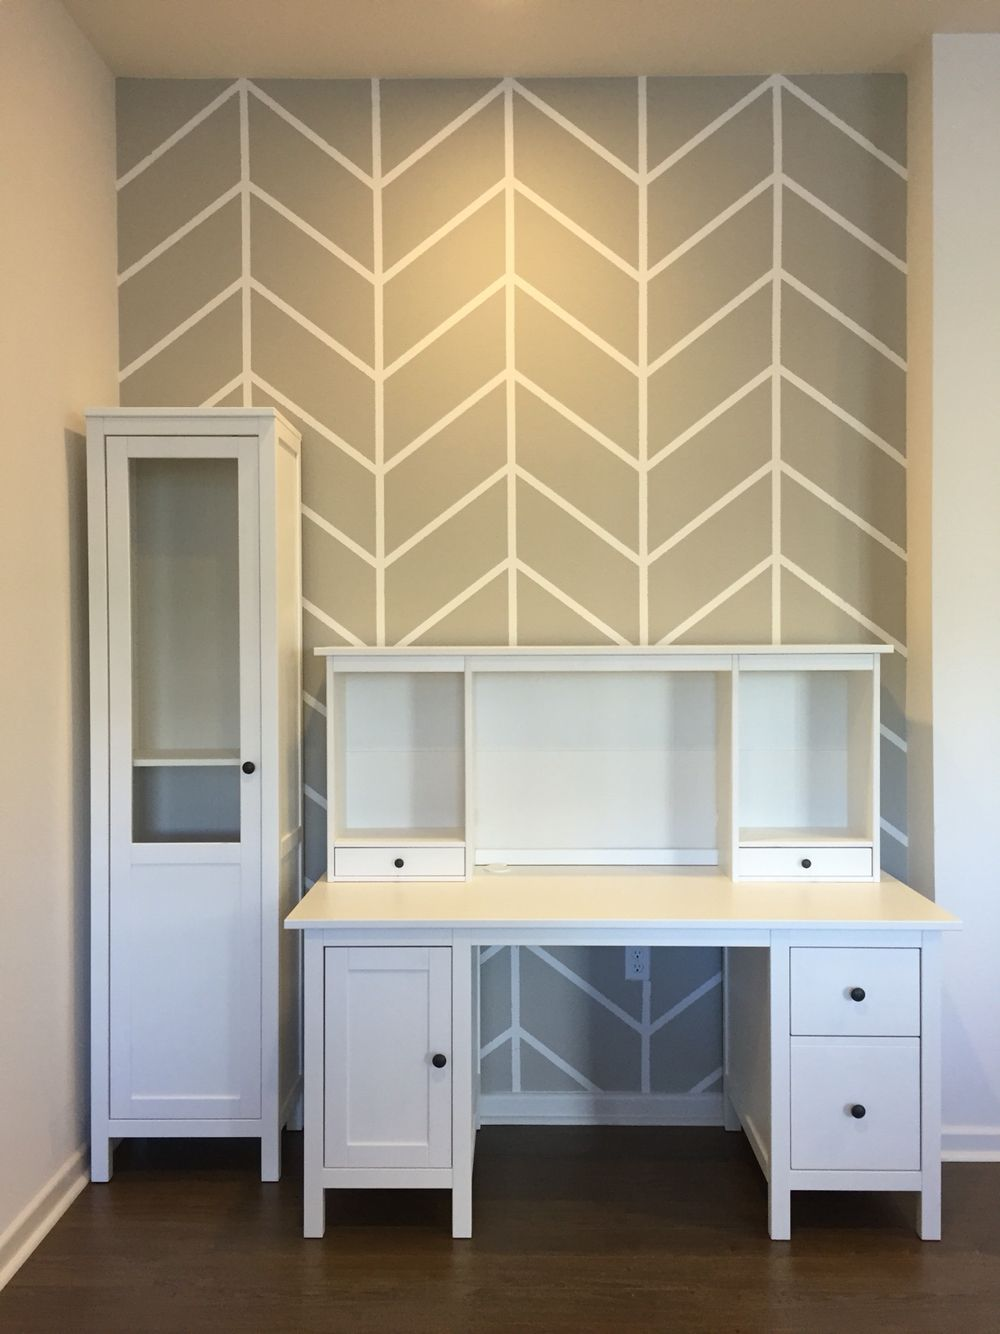 Diy Herringbone Pattern Accent Wall With Paint And Painters Tape Painting Patterns